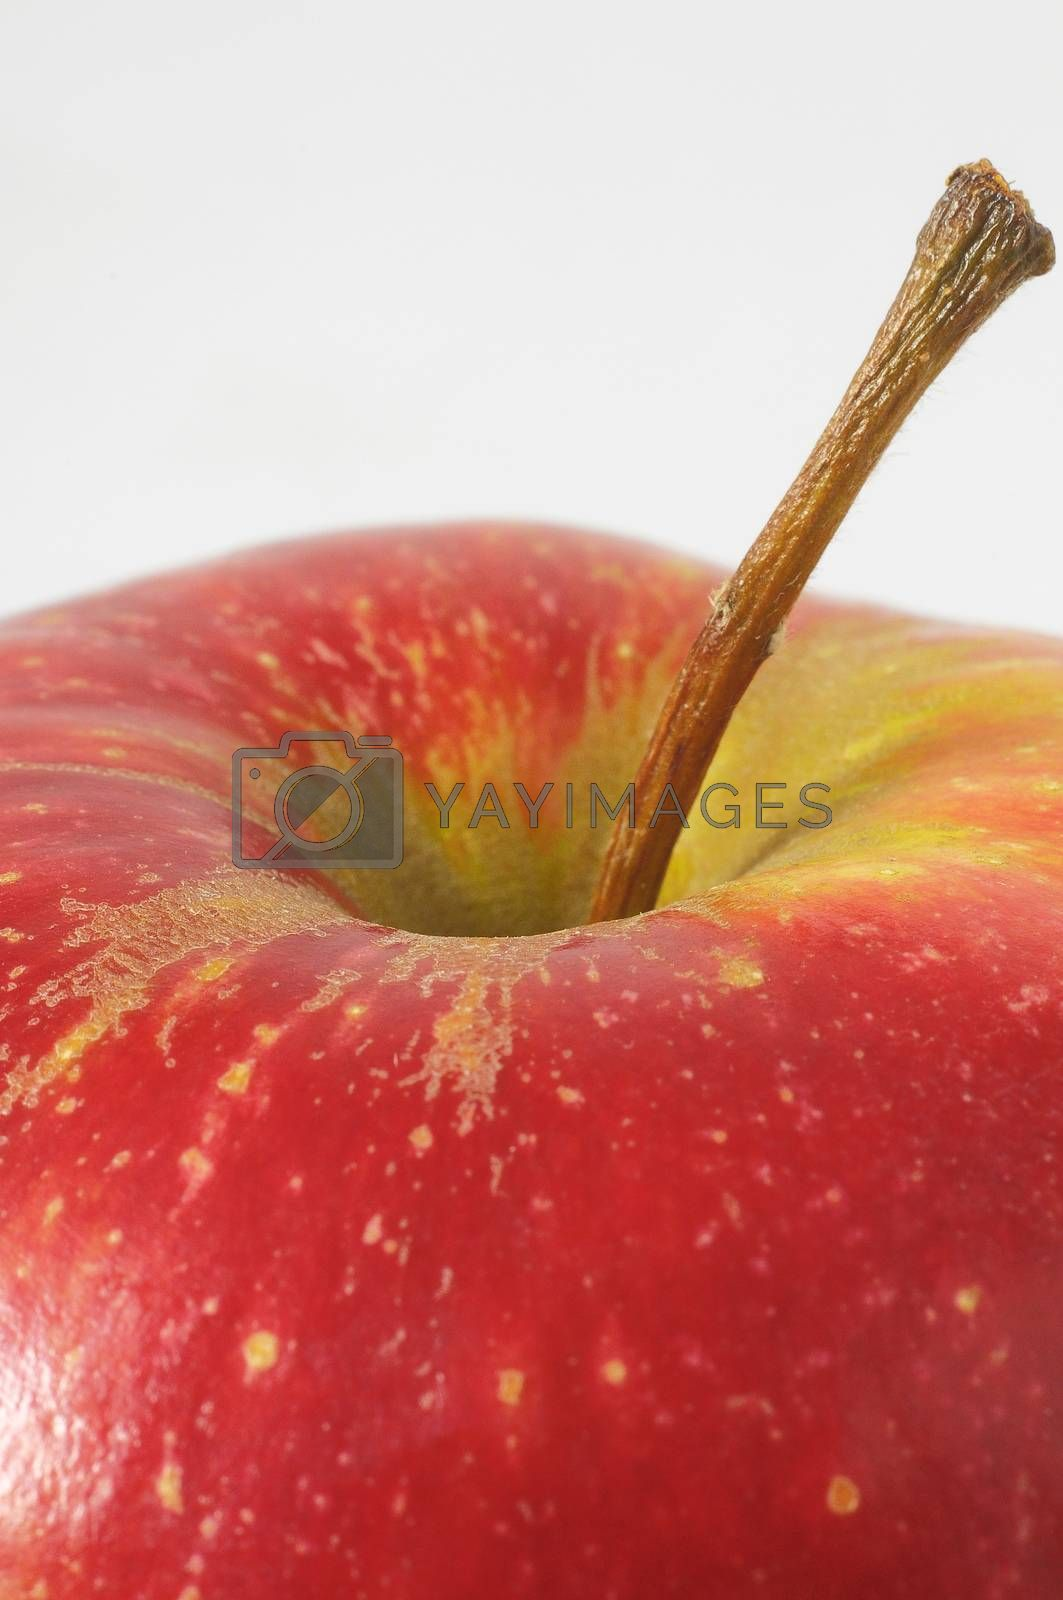 One Juicy Hot Red Apple over a White Background